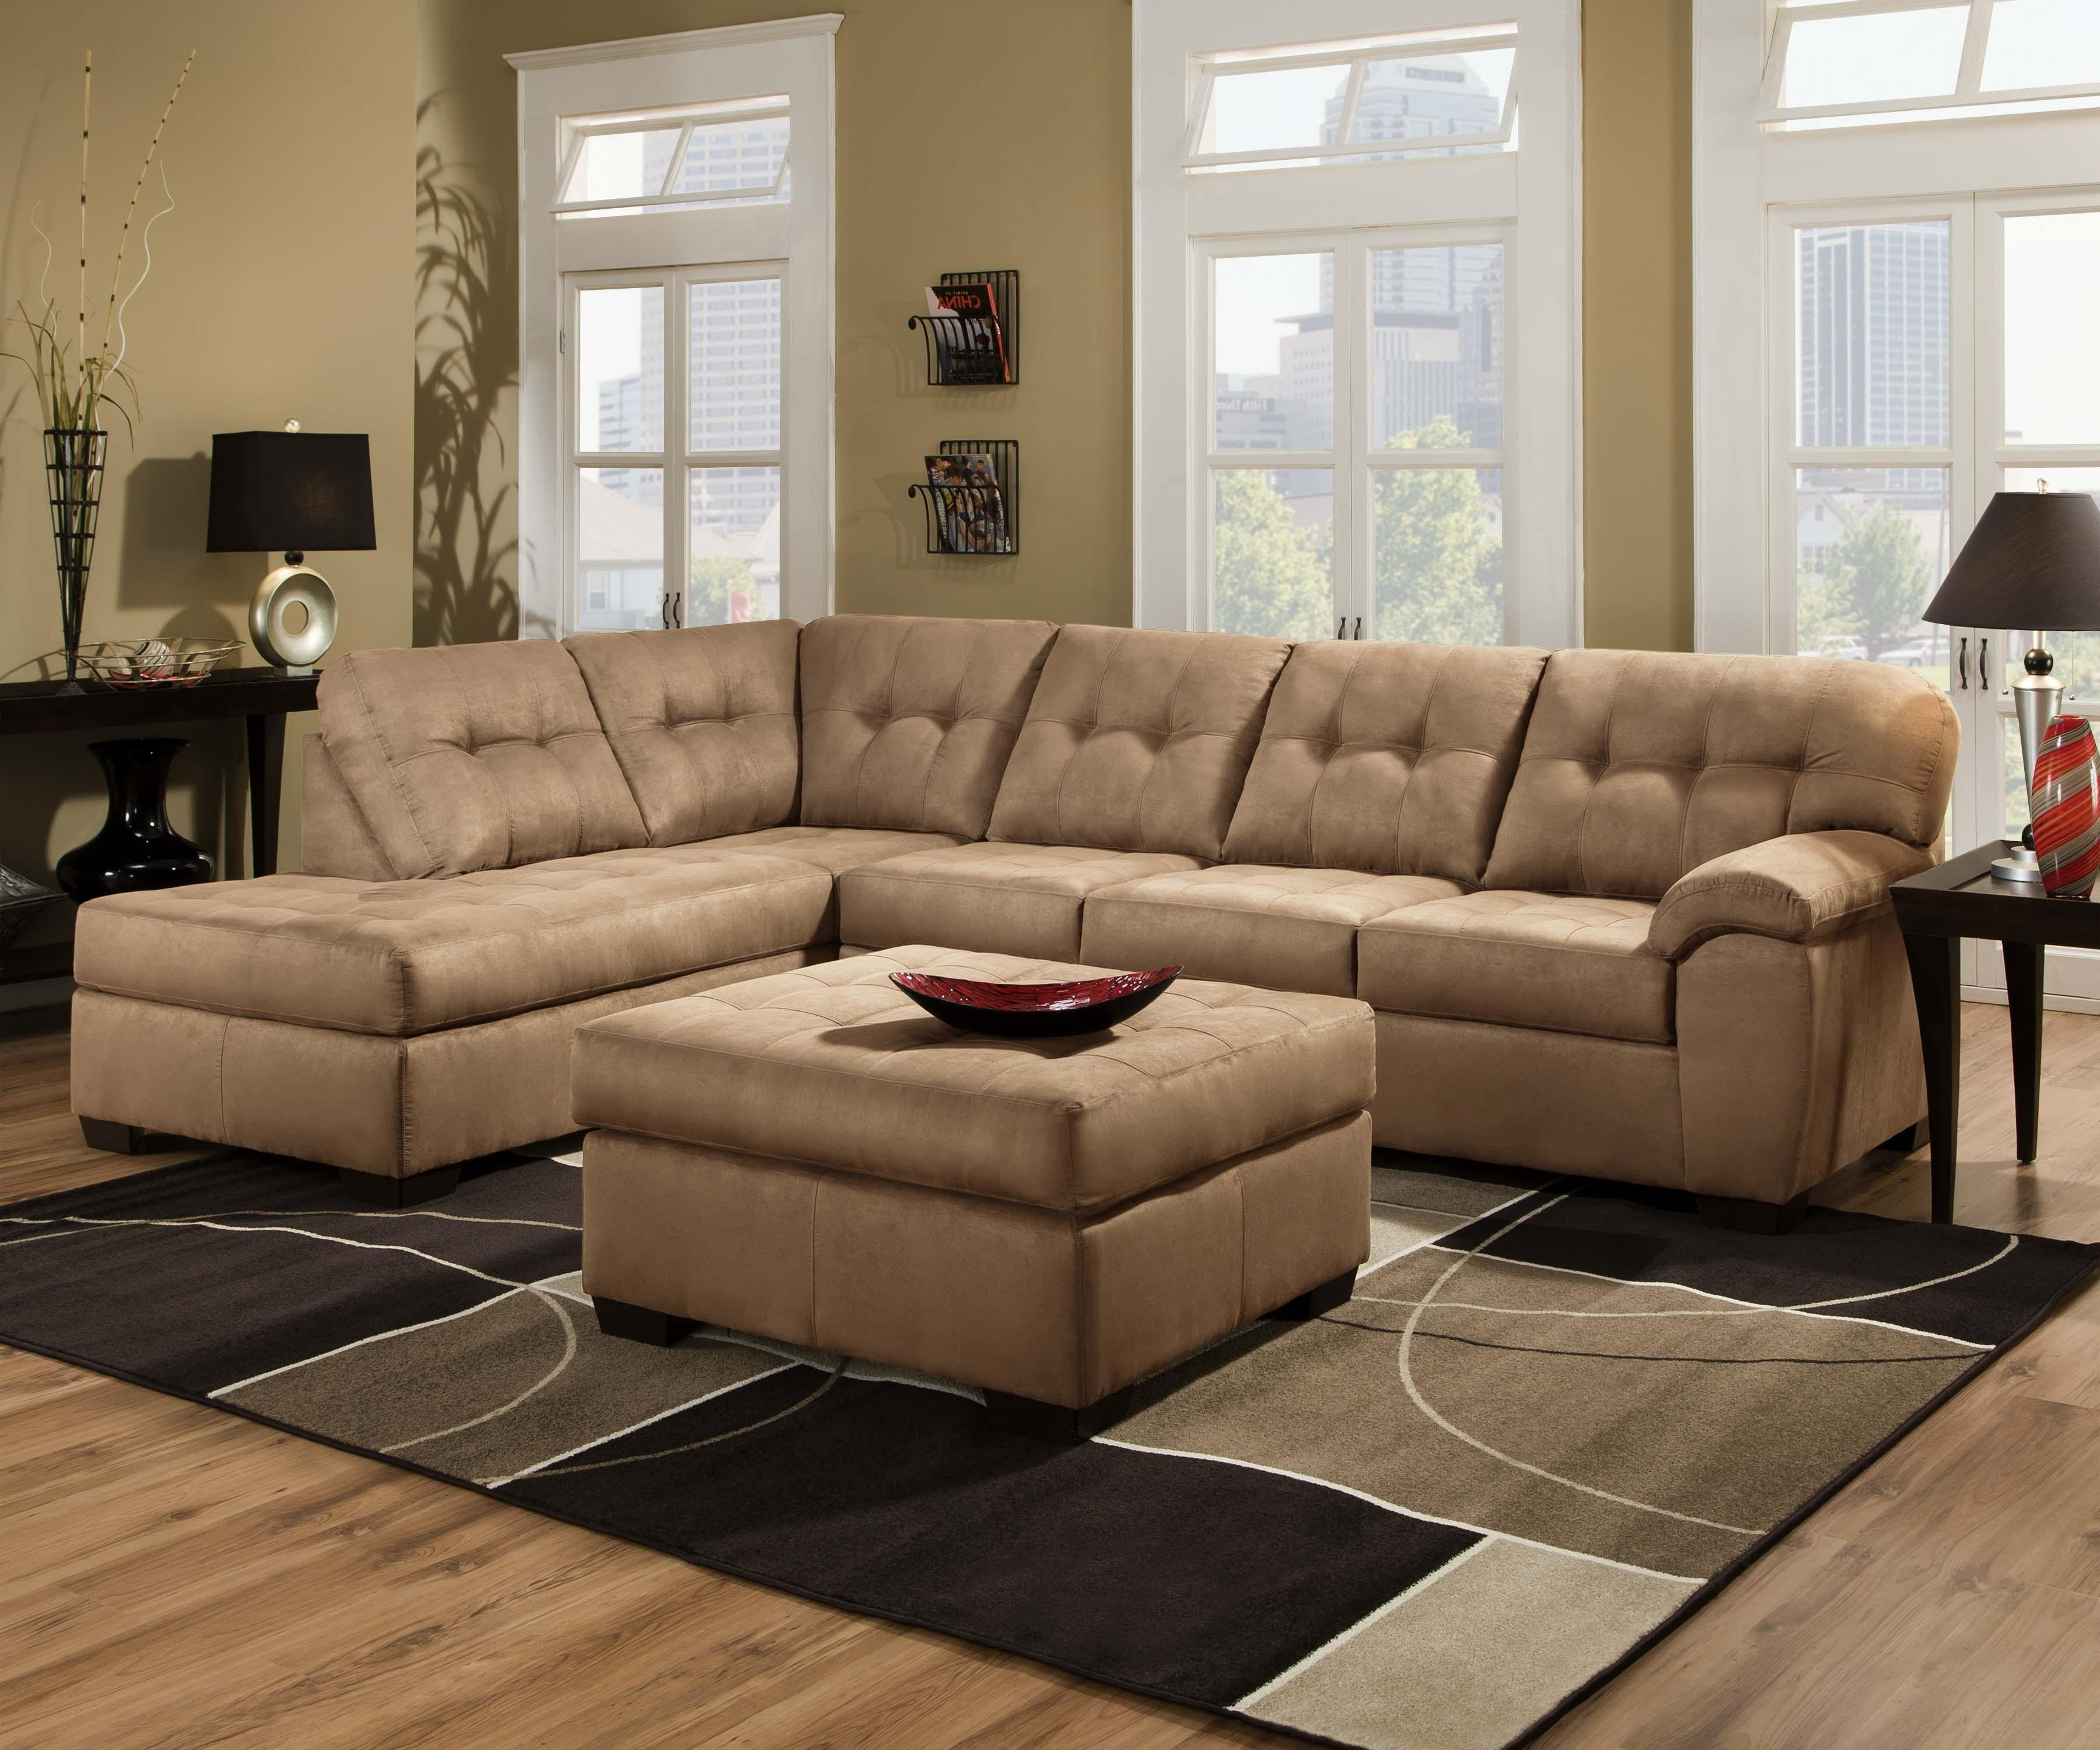 2017 United Furniture Industries 9558 Transitional 2 Piece Sectional For Jacksonville Nc Sectional Sofas (View 15 of 15)